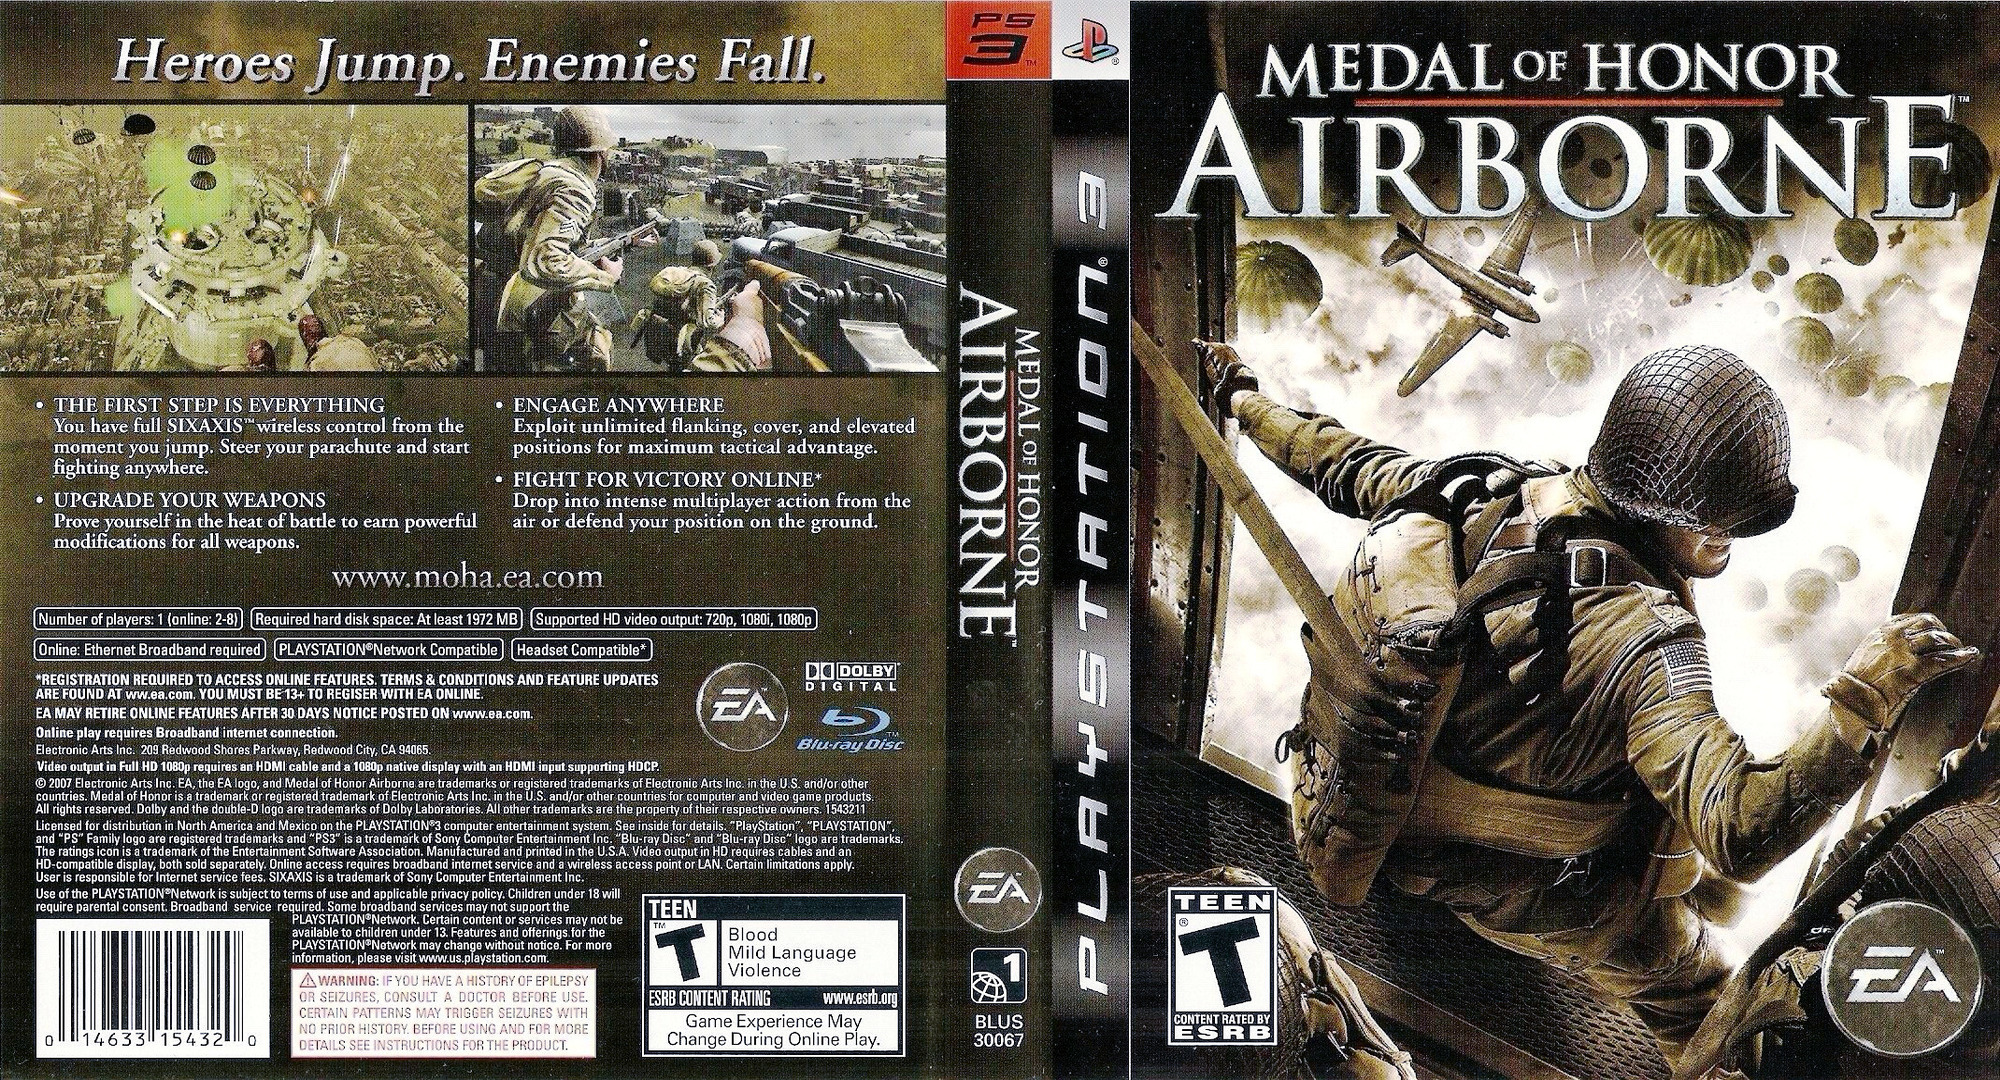 Blus30067 Medal Of Honor Airborne